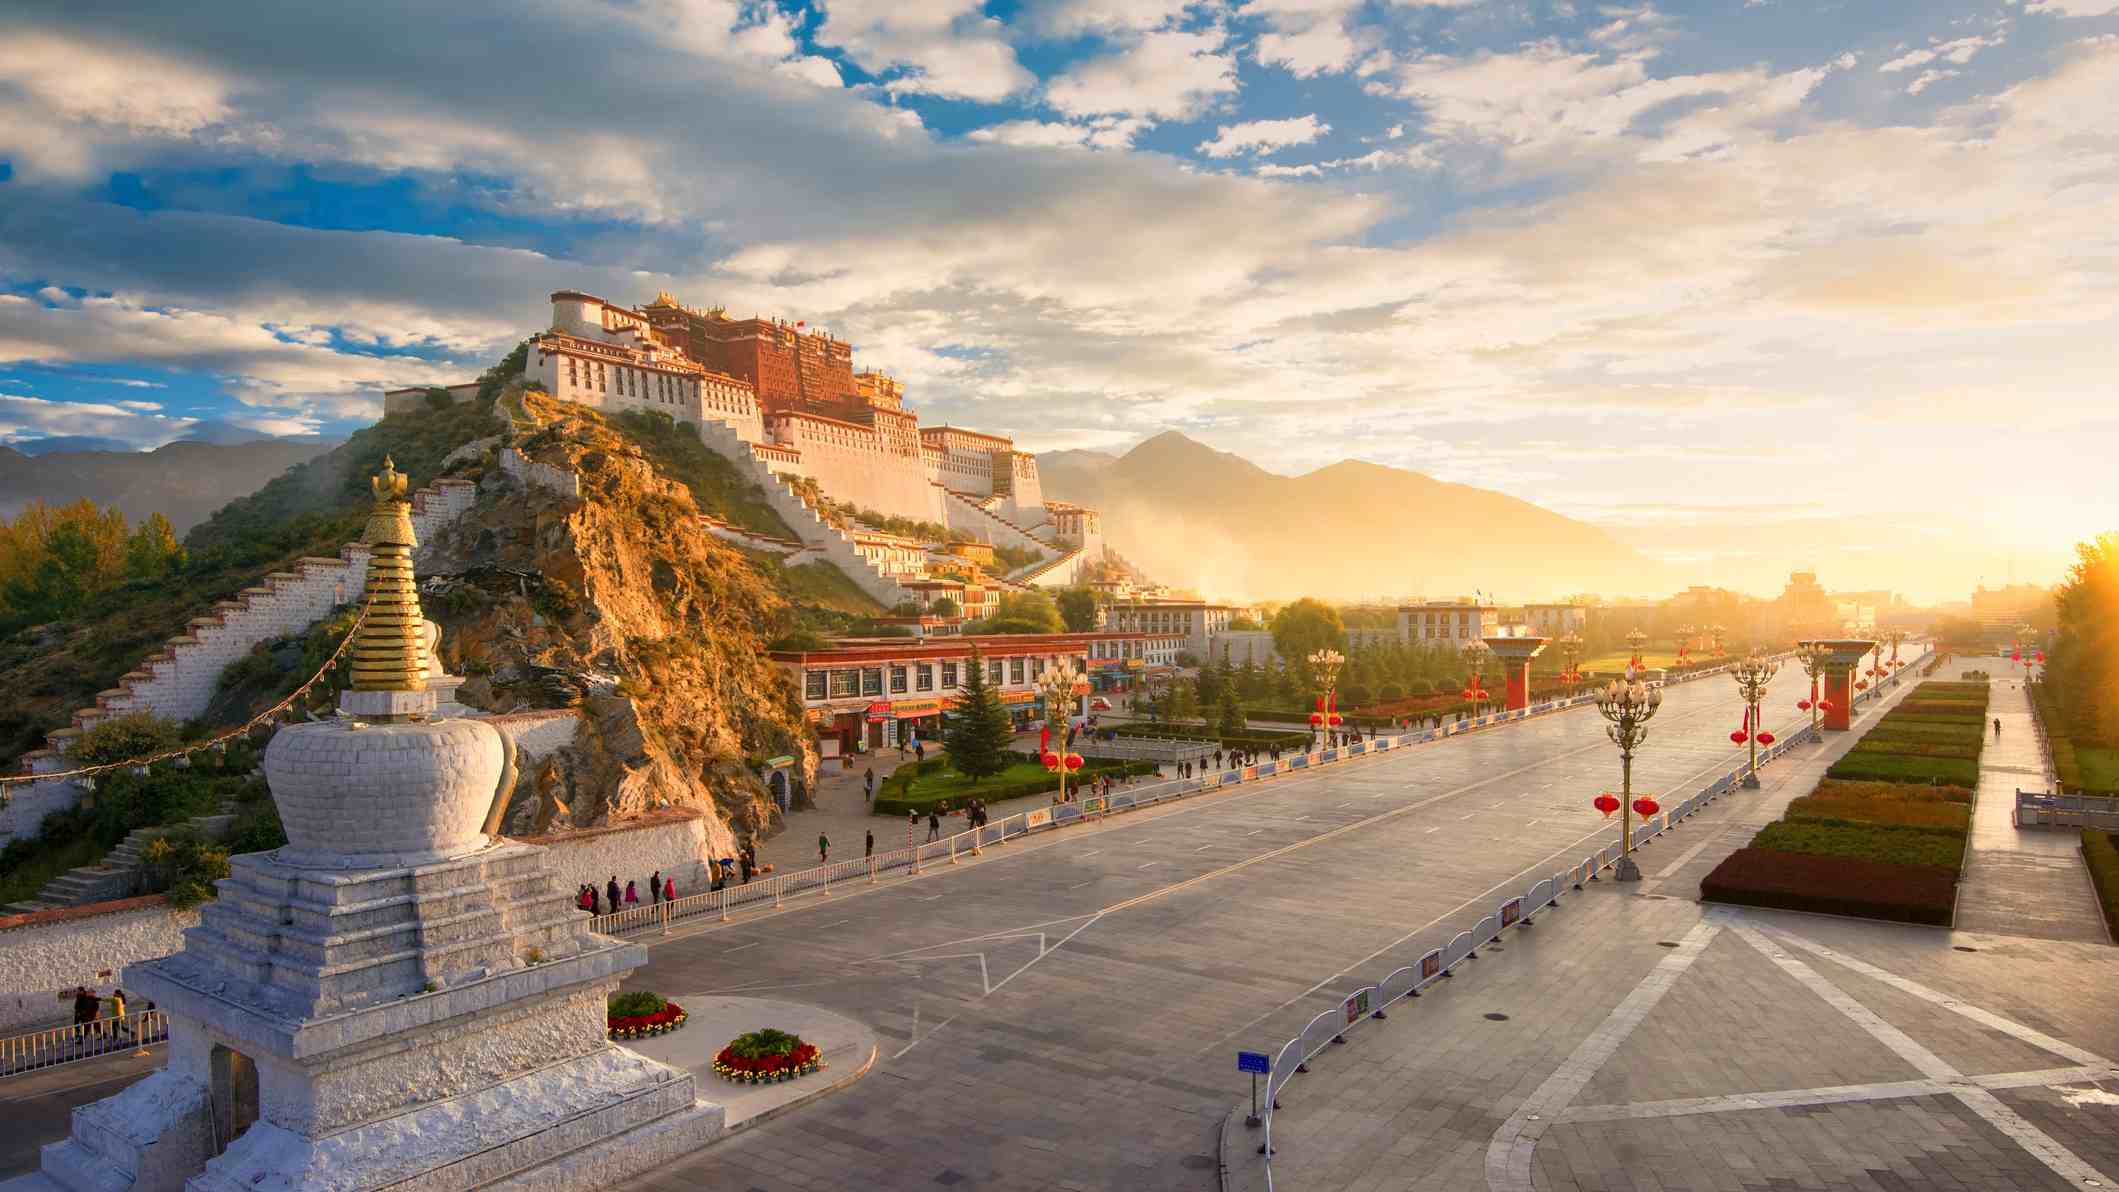 The plateau city of Lhasa received over one million visitors in Q1 2019